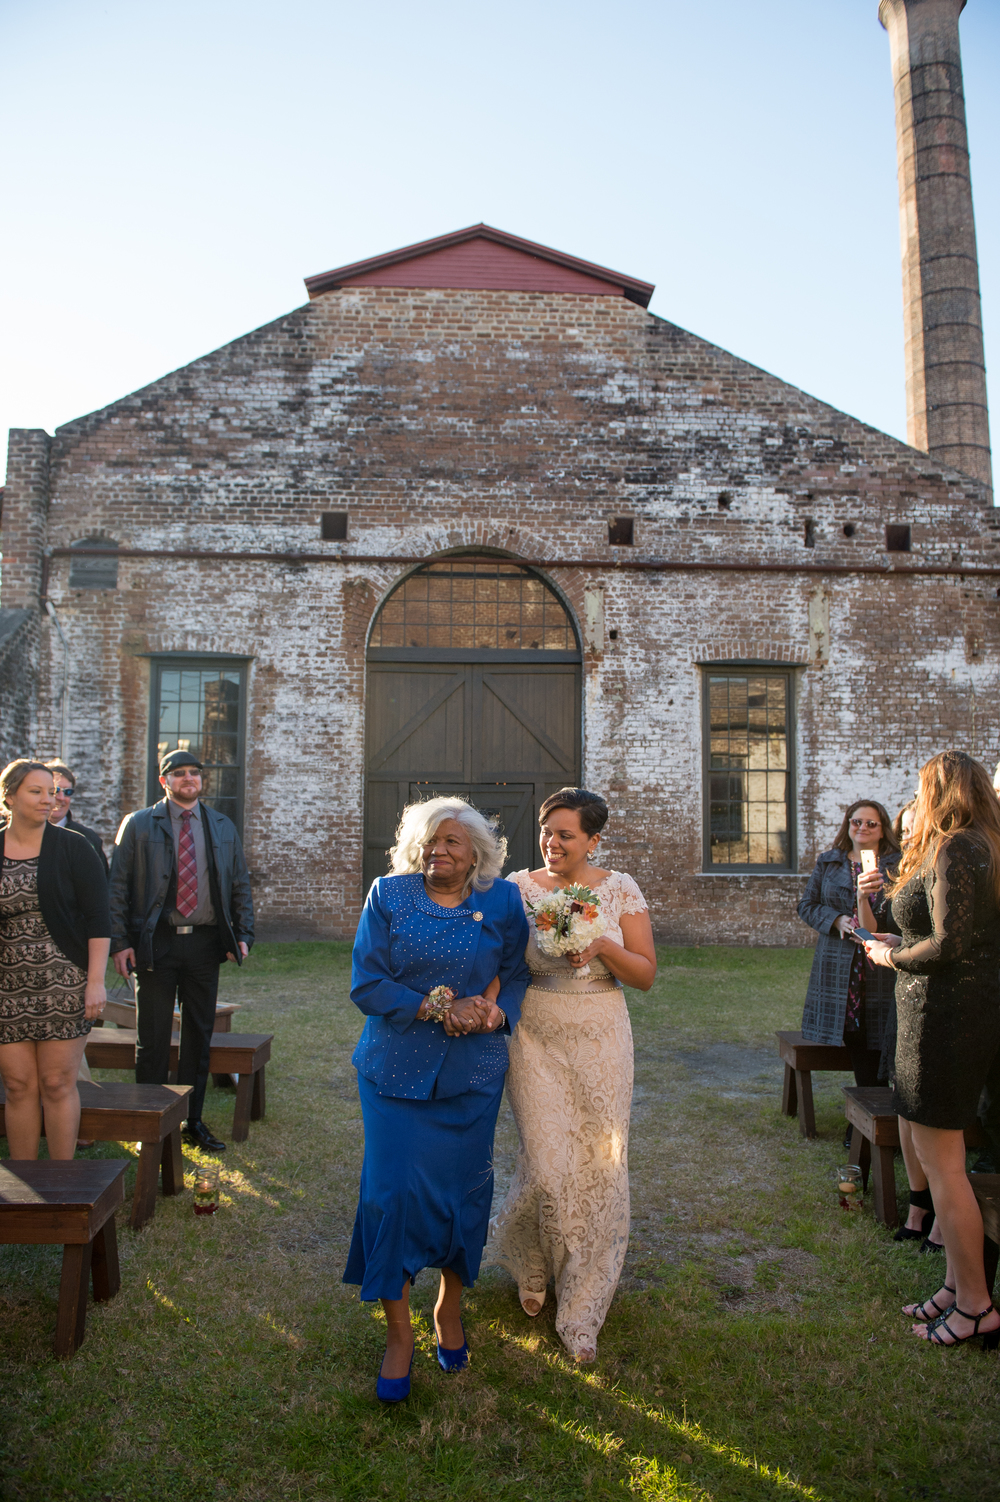 capree-kyle-la-vega-fotografie-roundhouse-railroad-museum-wedding-savannah-wedding-planner-rustic-savannah-wedding-museum-wedding-ivory-and-beau-savannah-bridal-boutique-savannah-weddings-savannah-event-designer-savannah-florist-11.jpg